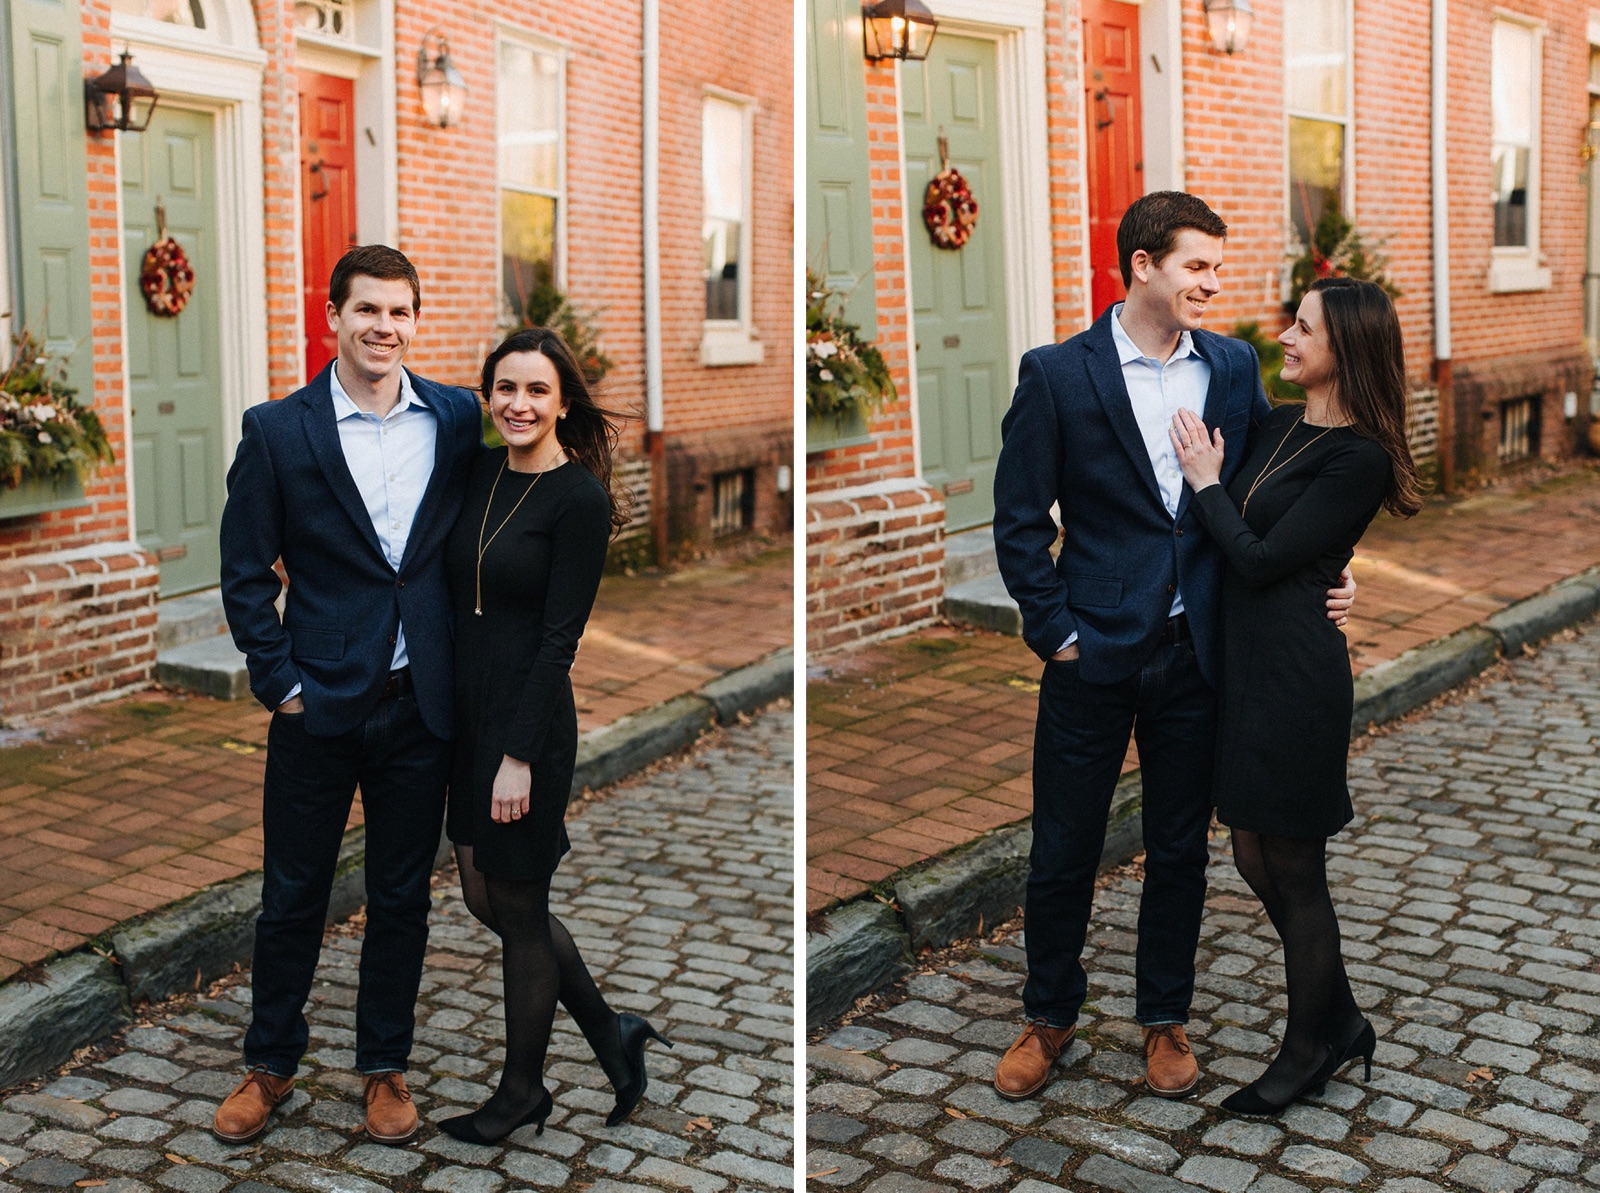 02_Headhouse_photography_engagement_philadelphia.jpg